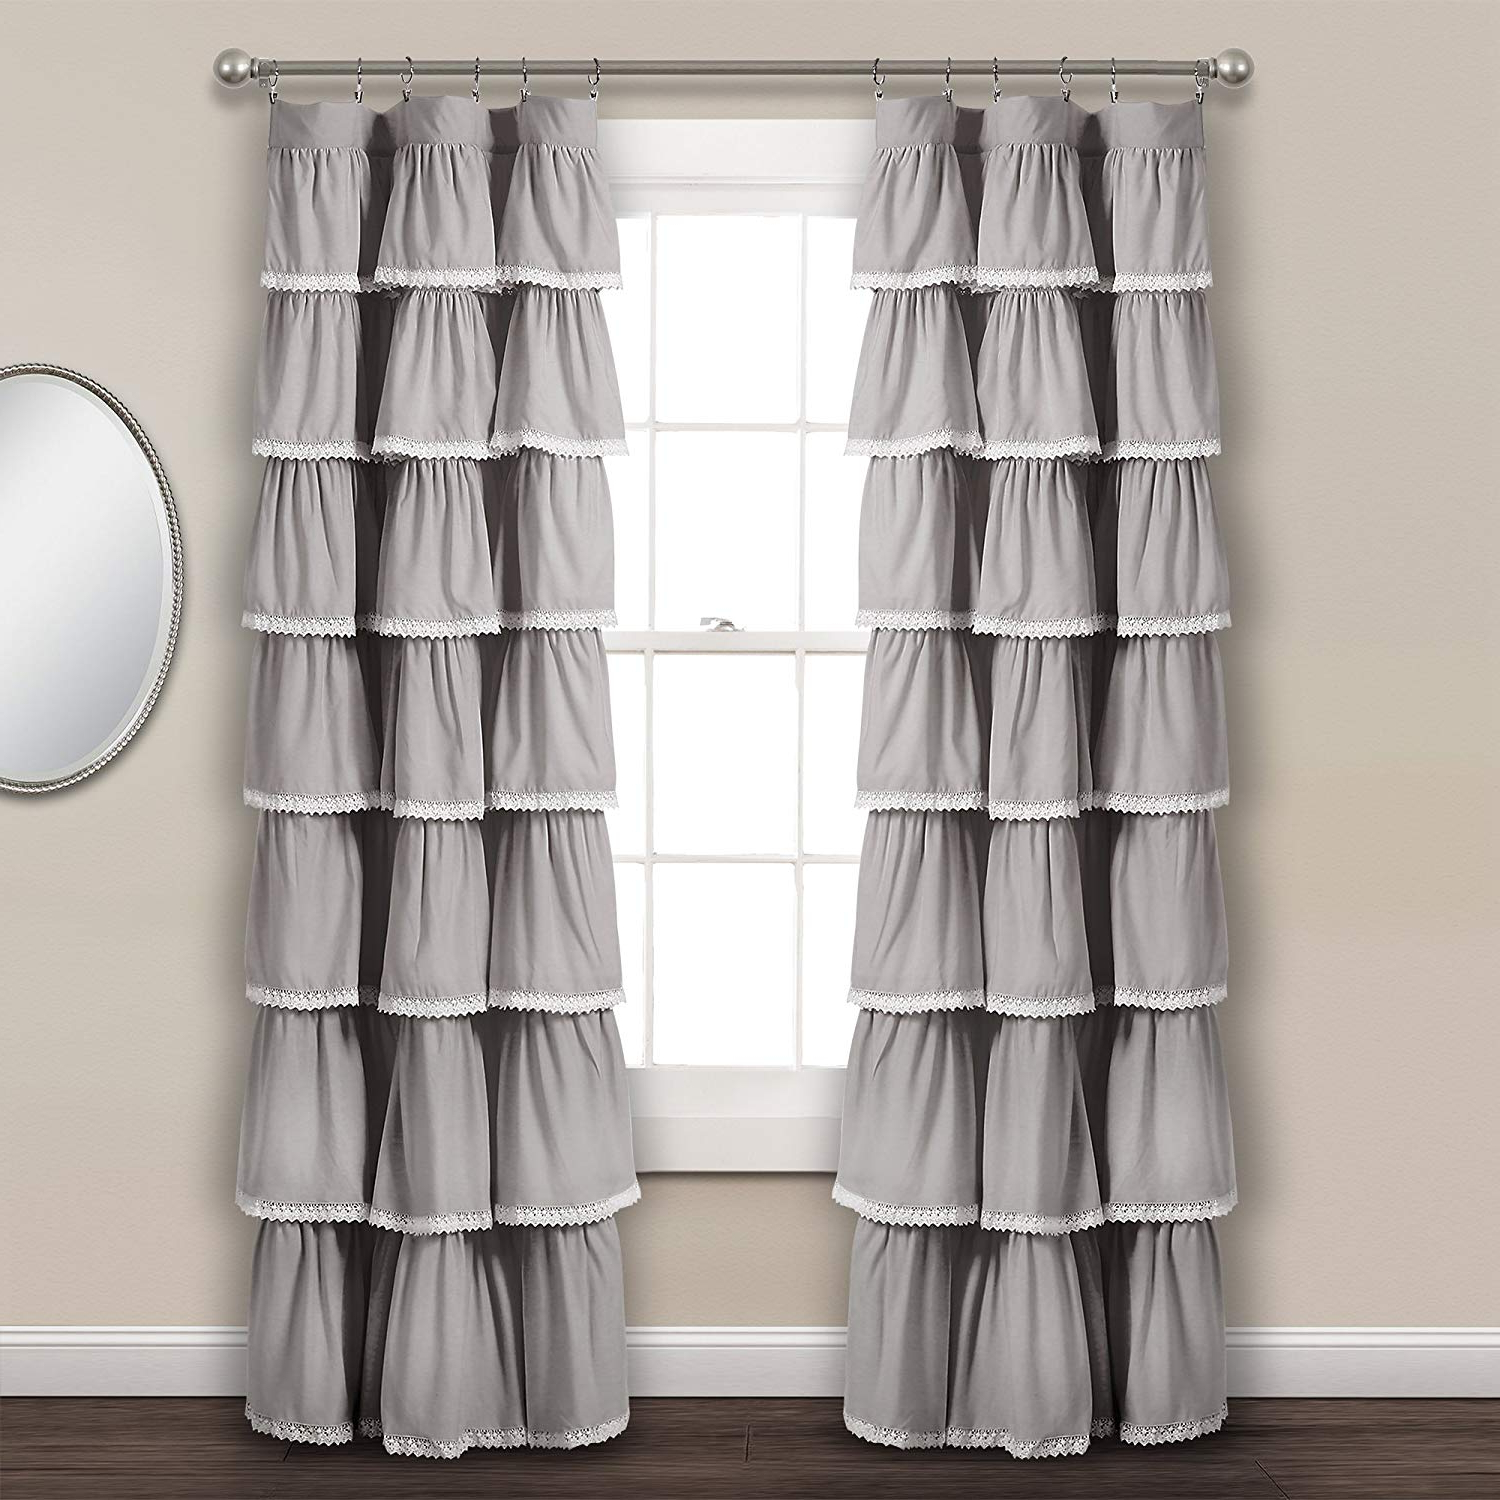 "Lush Decor Lace Ruffle Window Curtain Panel, 84"" X 52"", Gray For Fashionable Lydia Ruffle Window Curtain Panel Pairs (View 13 of 20)"